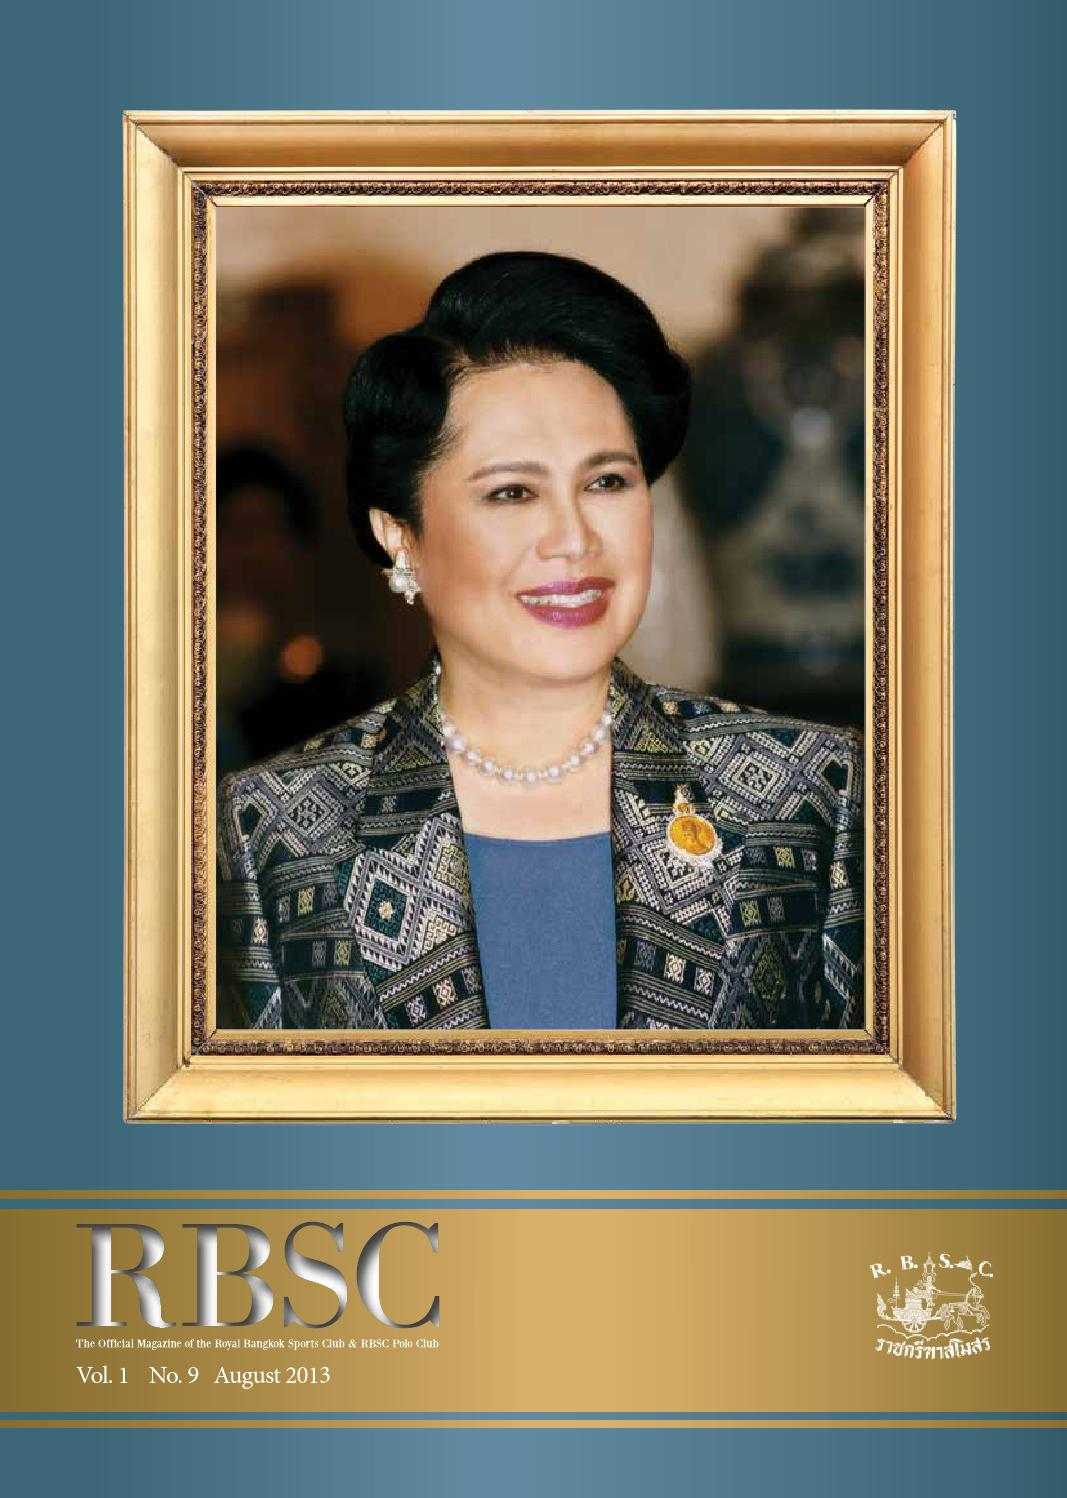 RBSC Magazine August 2013 by The Royal Bangkok Sports Club - issuu